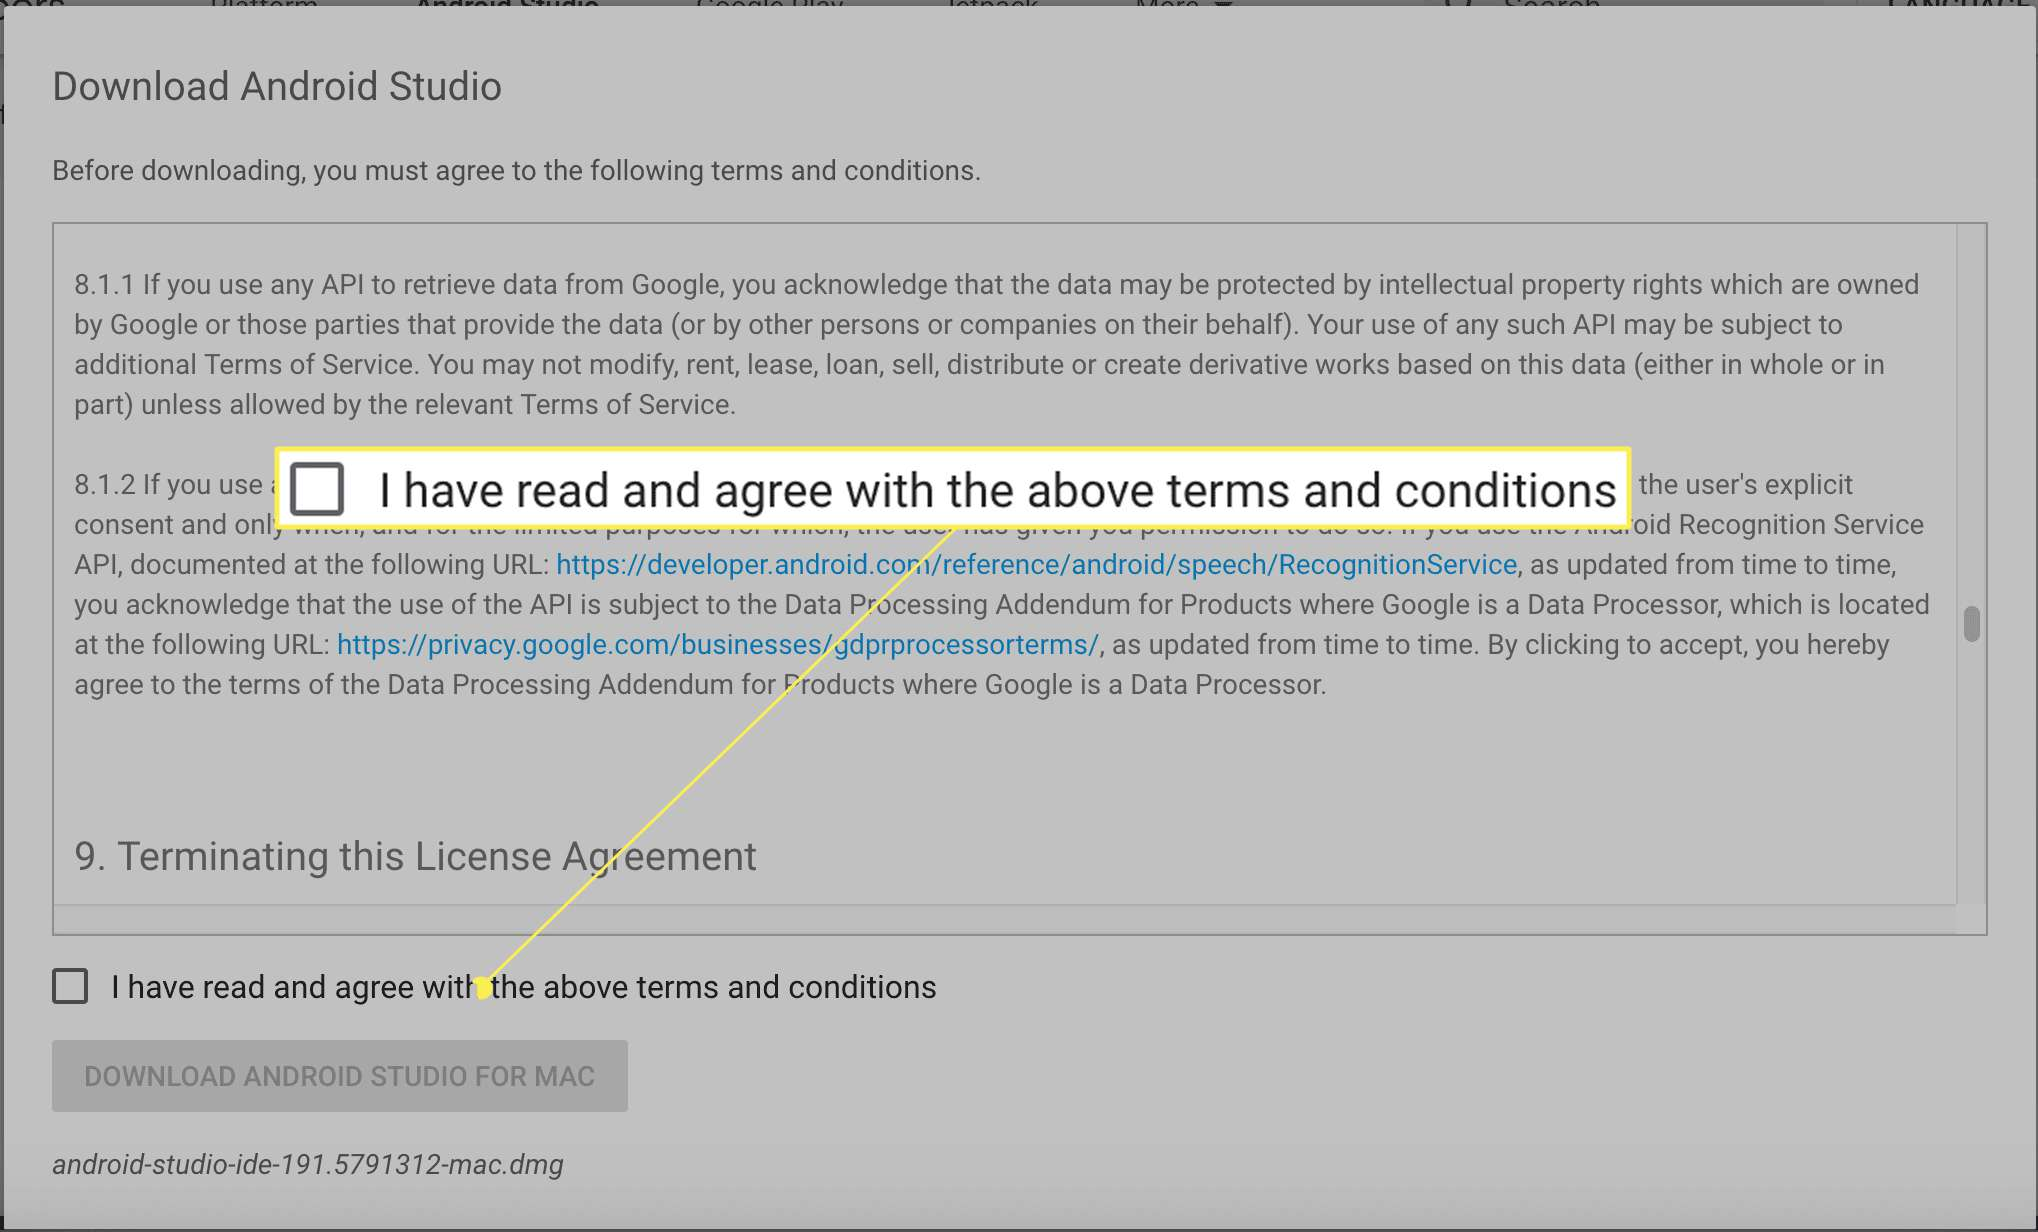 Android Studio terms agreement